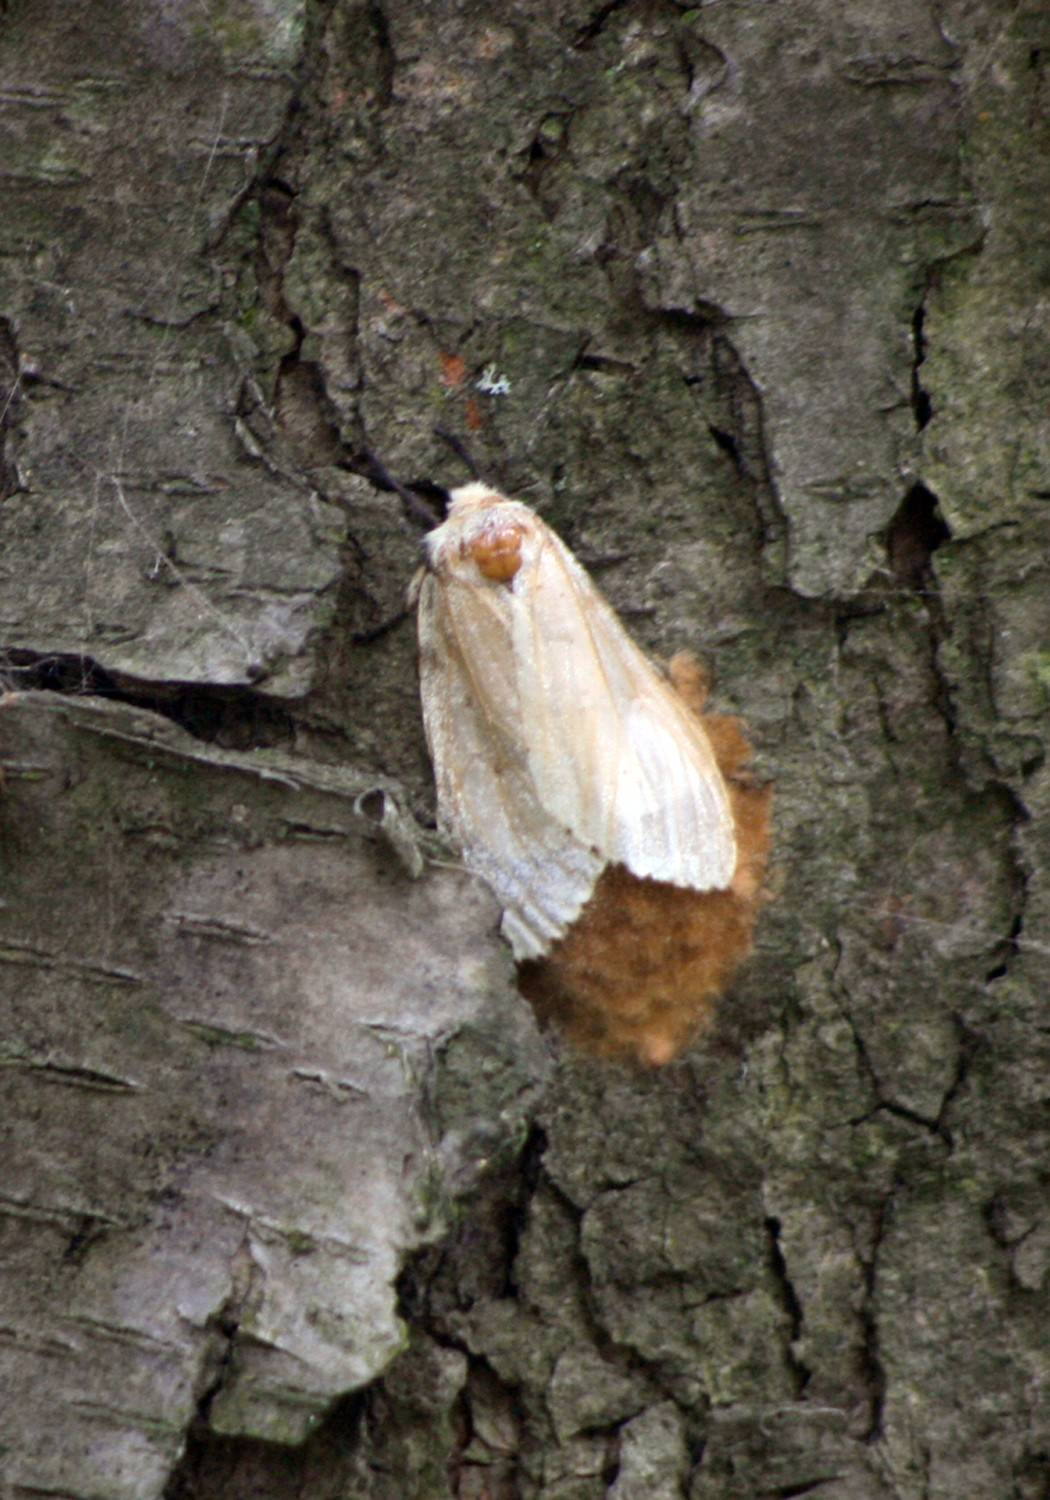 The fight against gyspy moths, insects that threaten the health of oaks and other trees, is expected to resume June 30 in forest preserves around DuPage County.